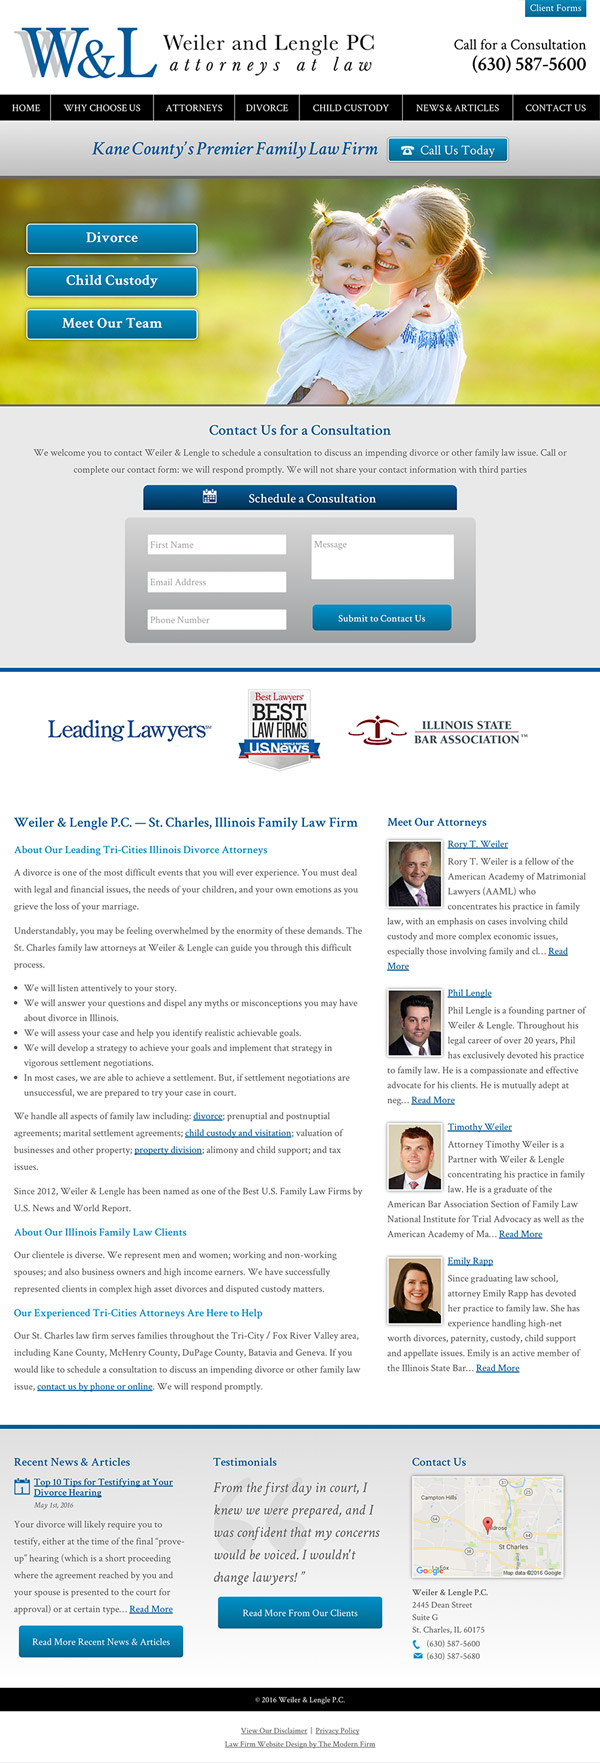 Law Firm Website Design for Weiler & Lengle, P.C.